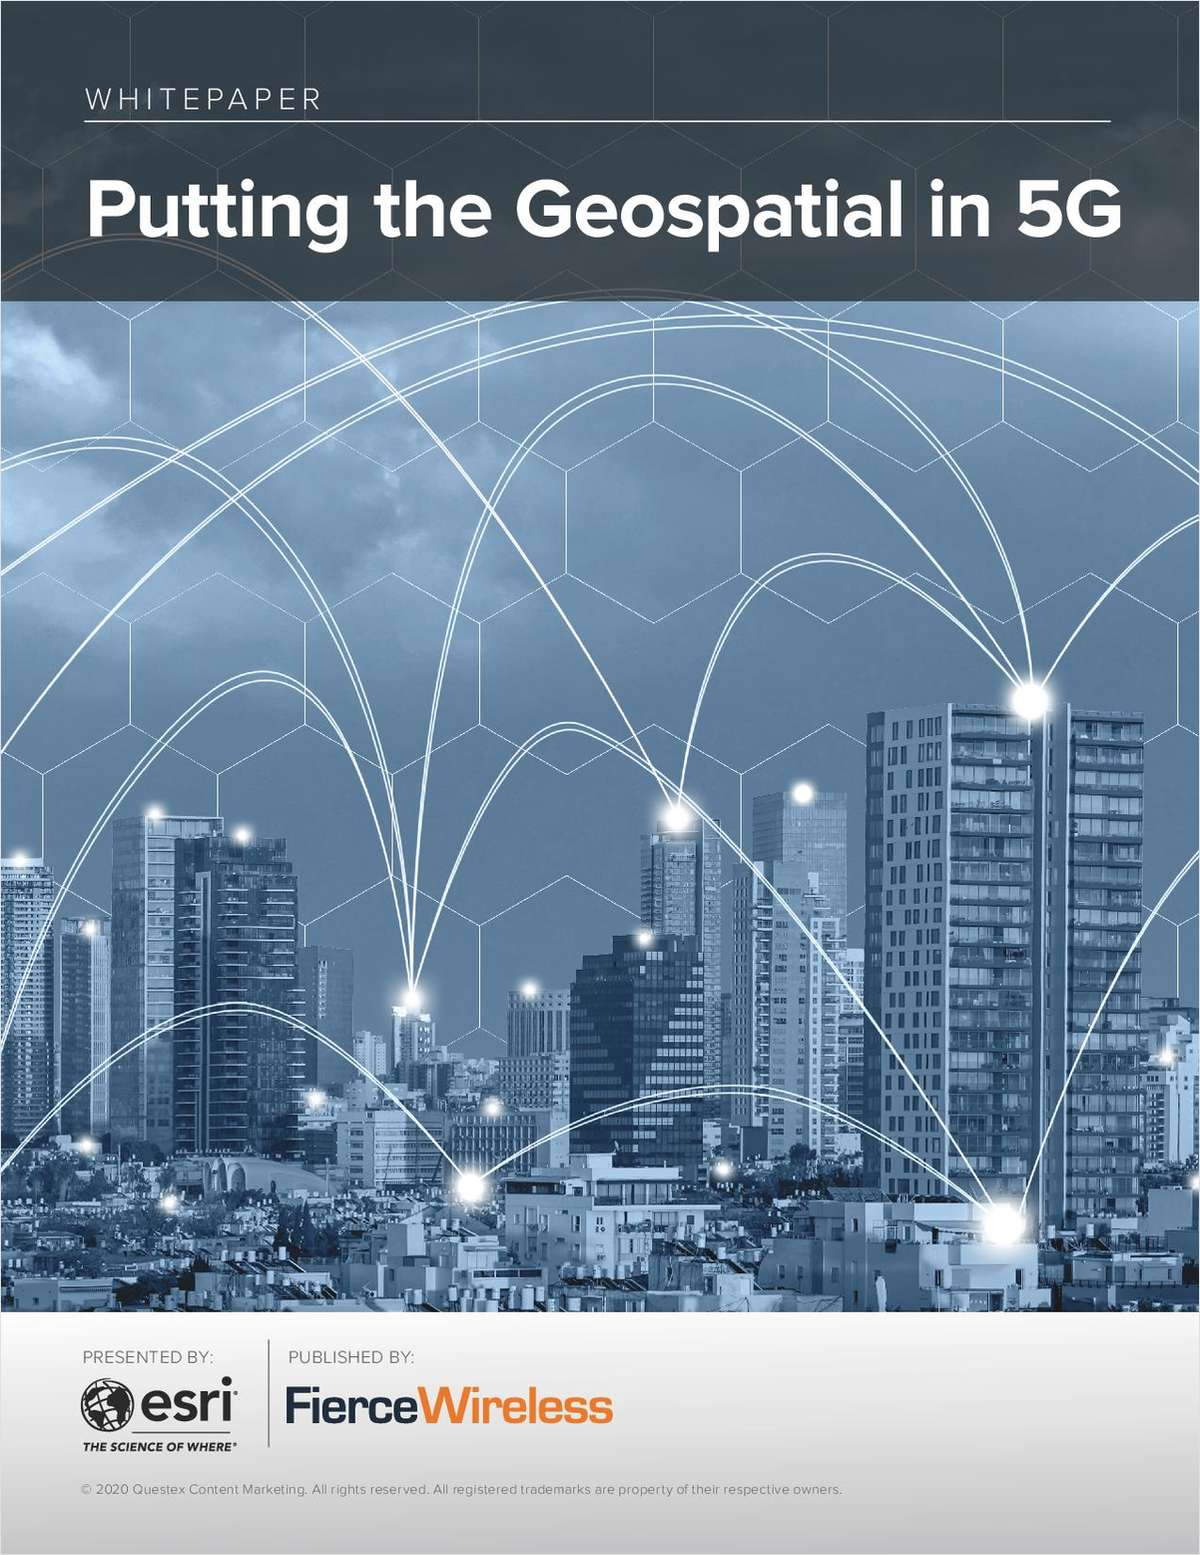 Putting the Geospatial in 5G